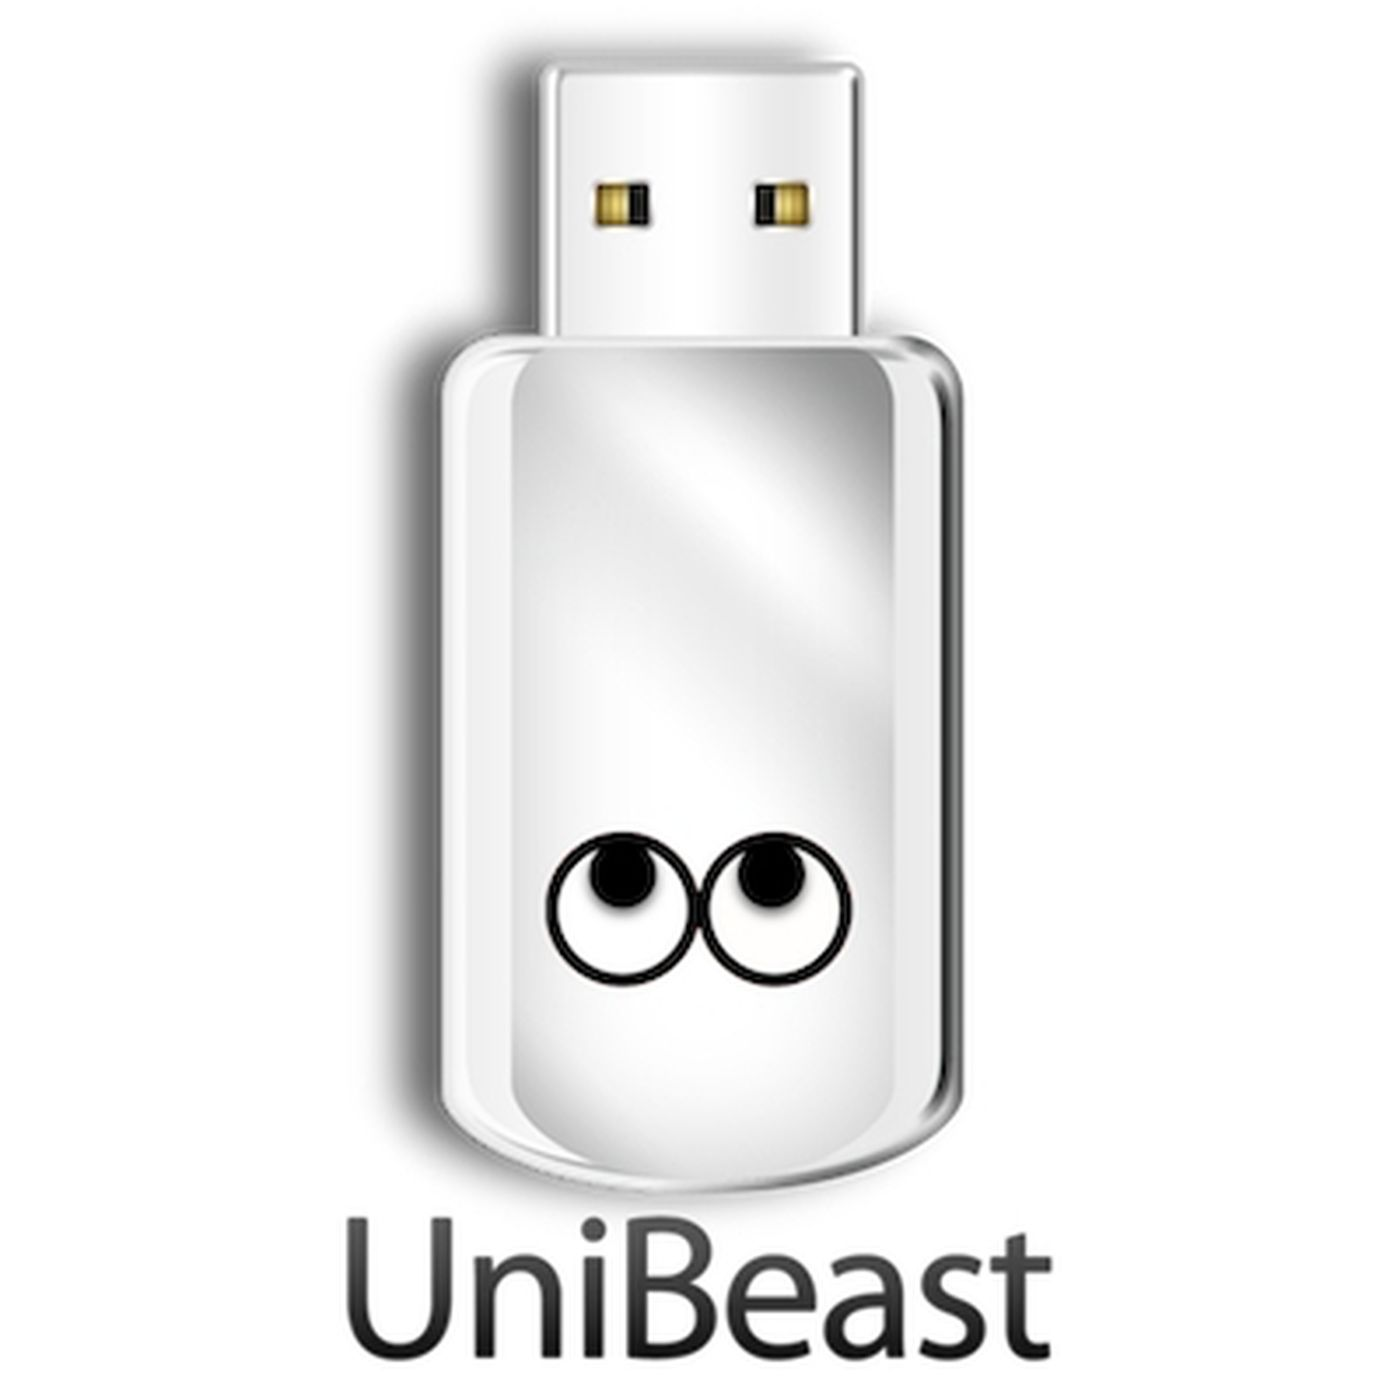 UniBeast helps install Lion on your Hackintosh - The Verge